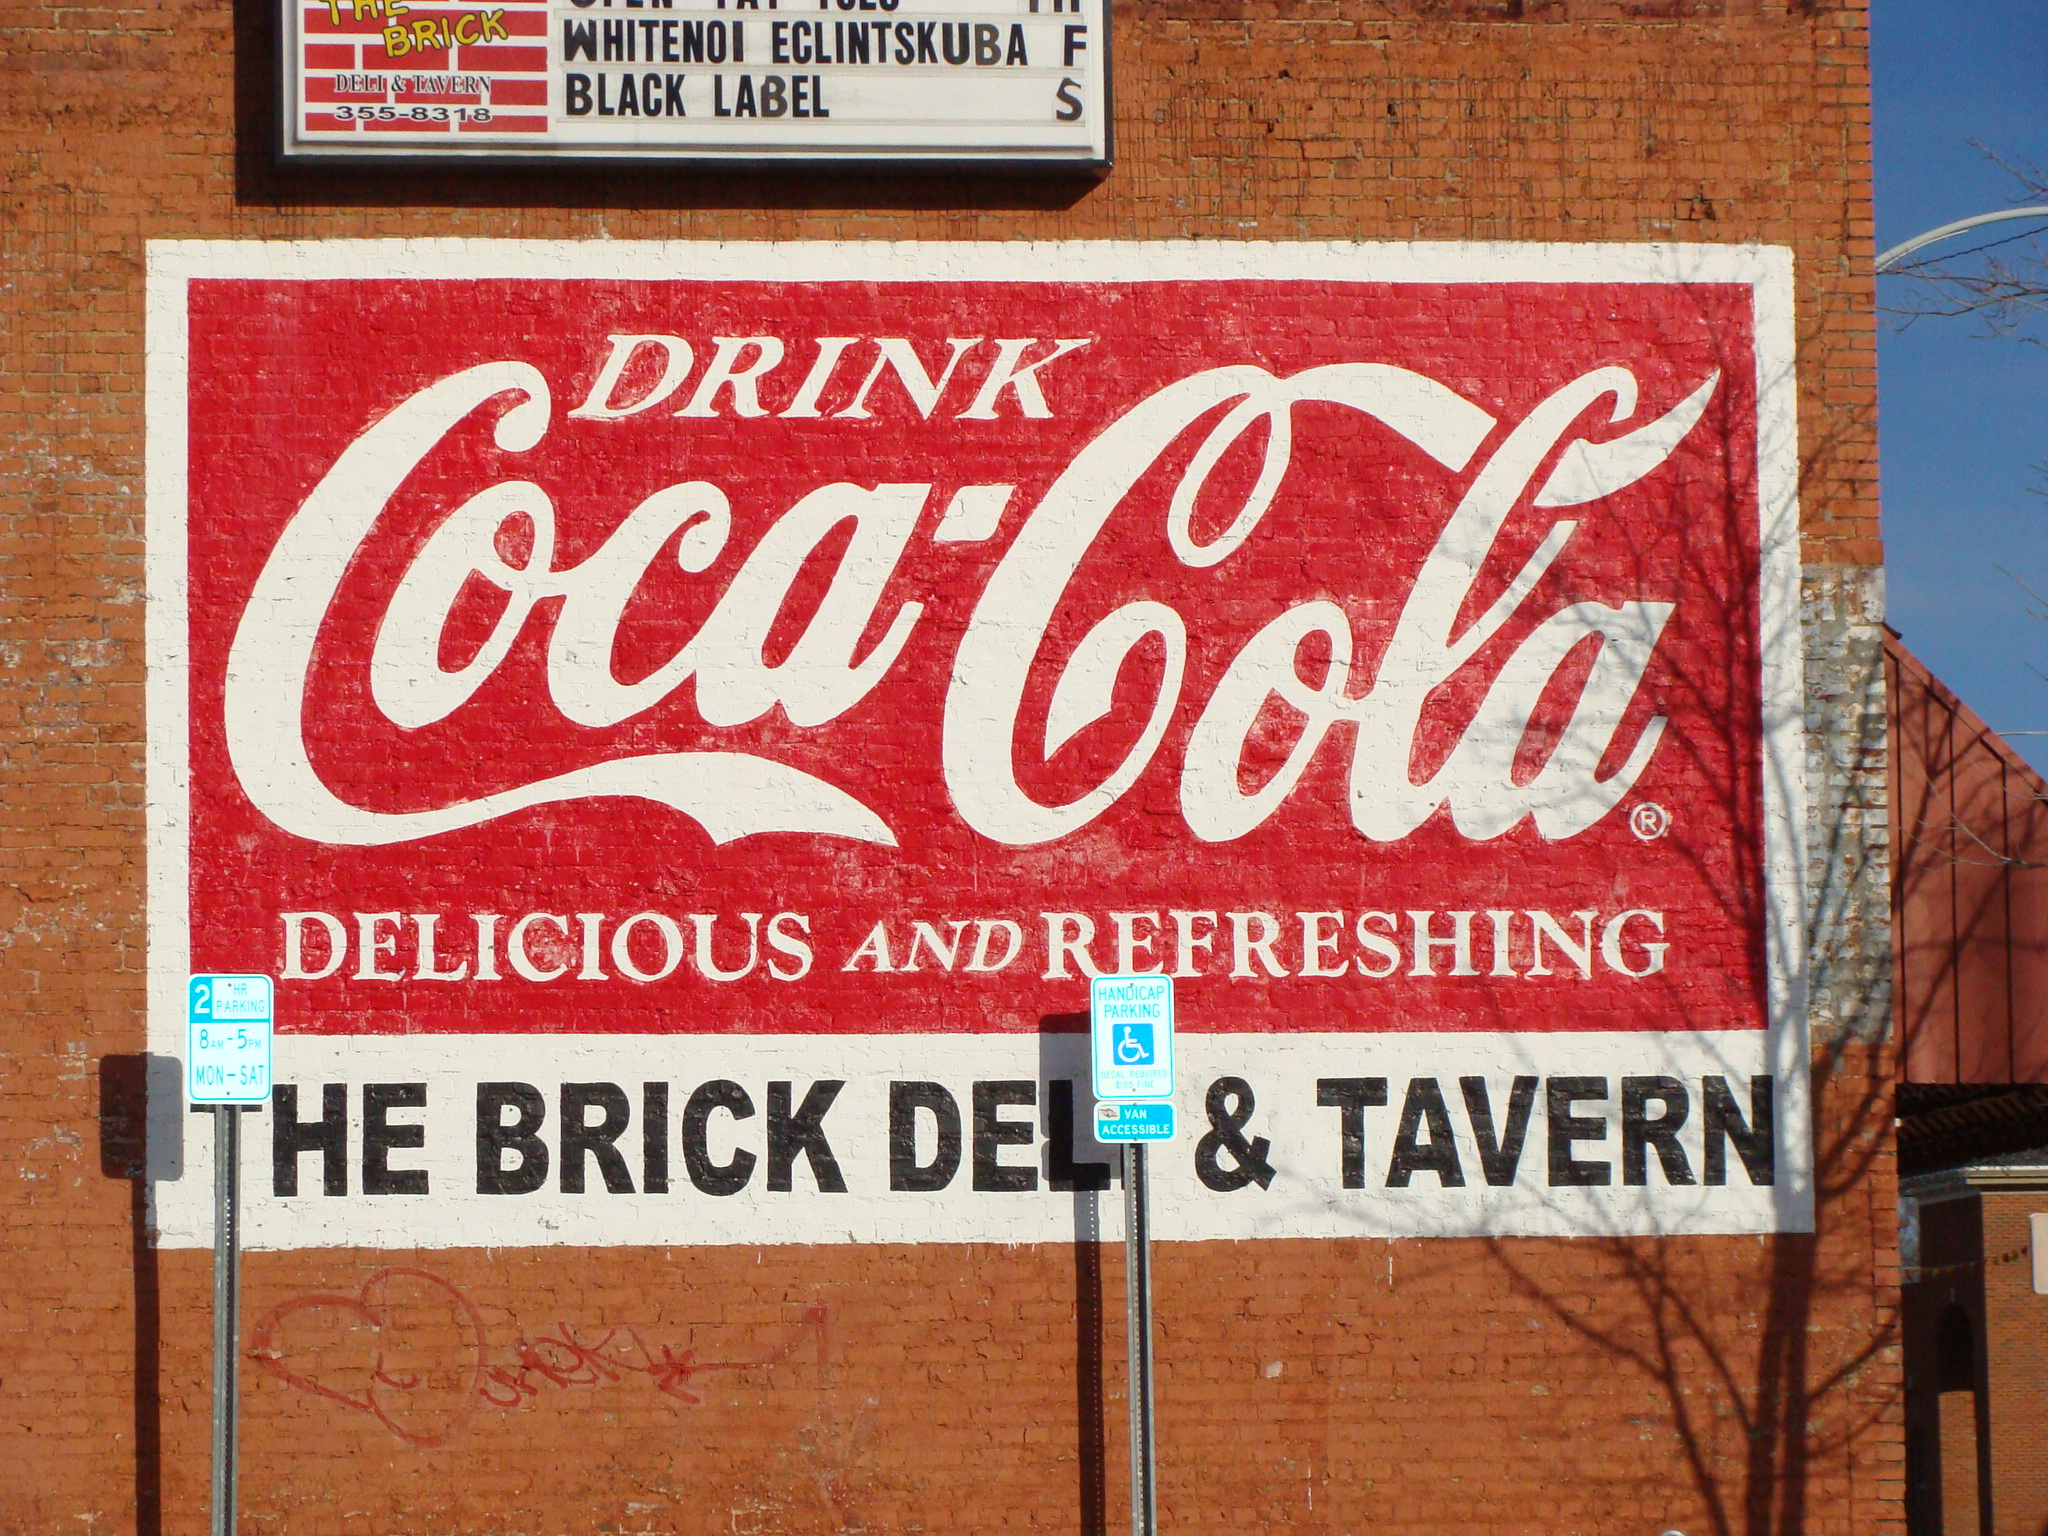 Coca-Cola-wall-The-Brick-Deli-Tavern-wallpaper-wp5603956